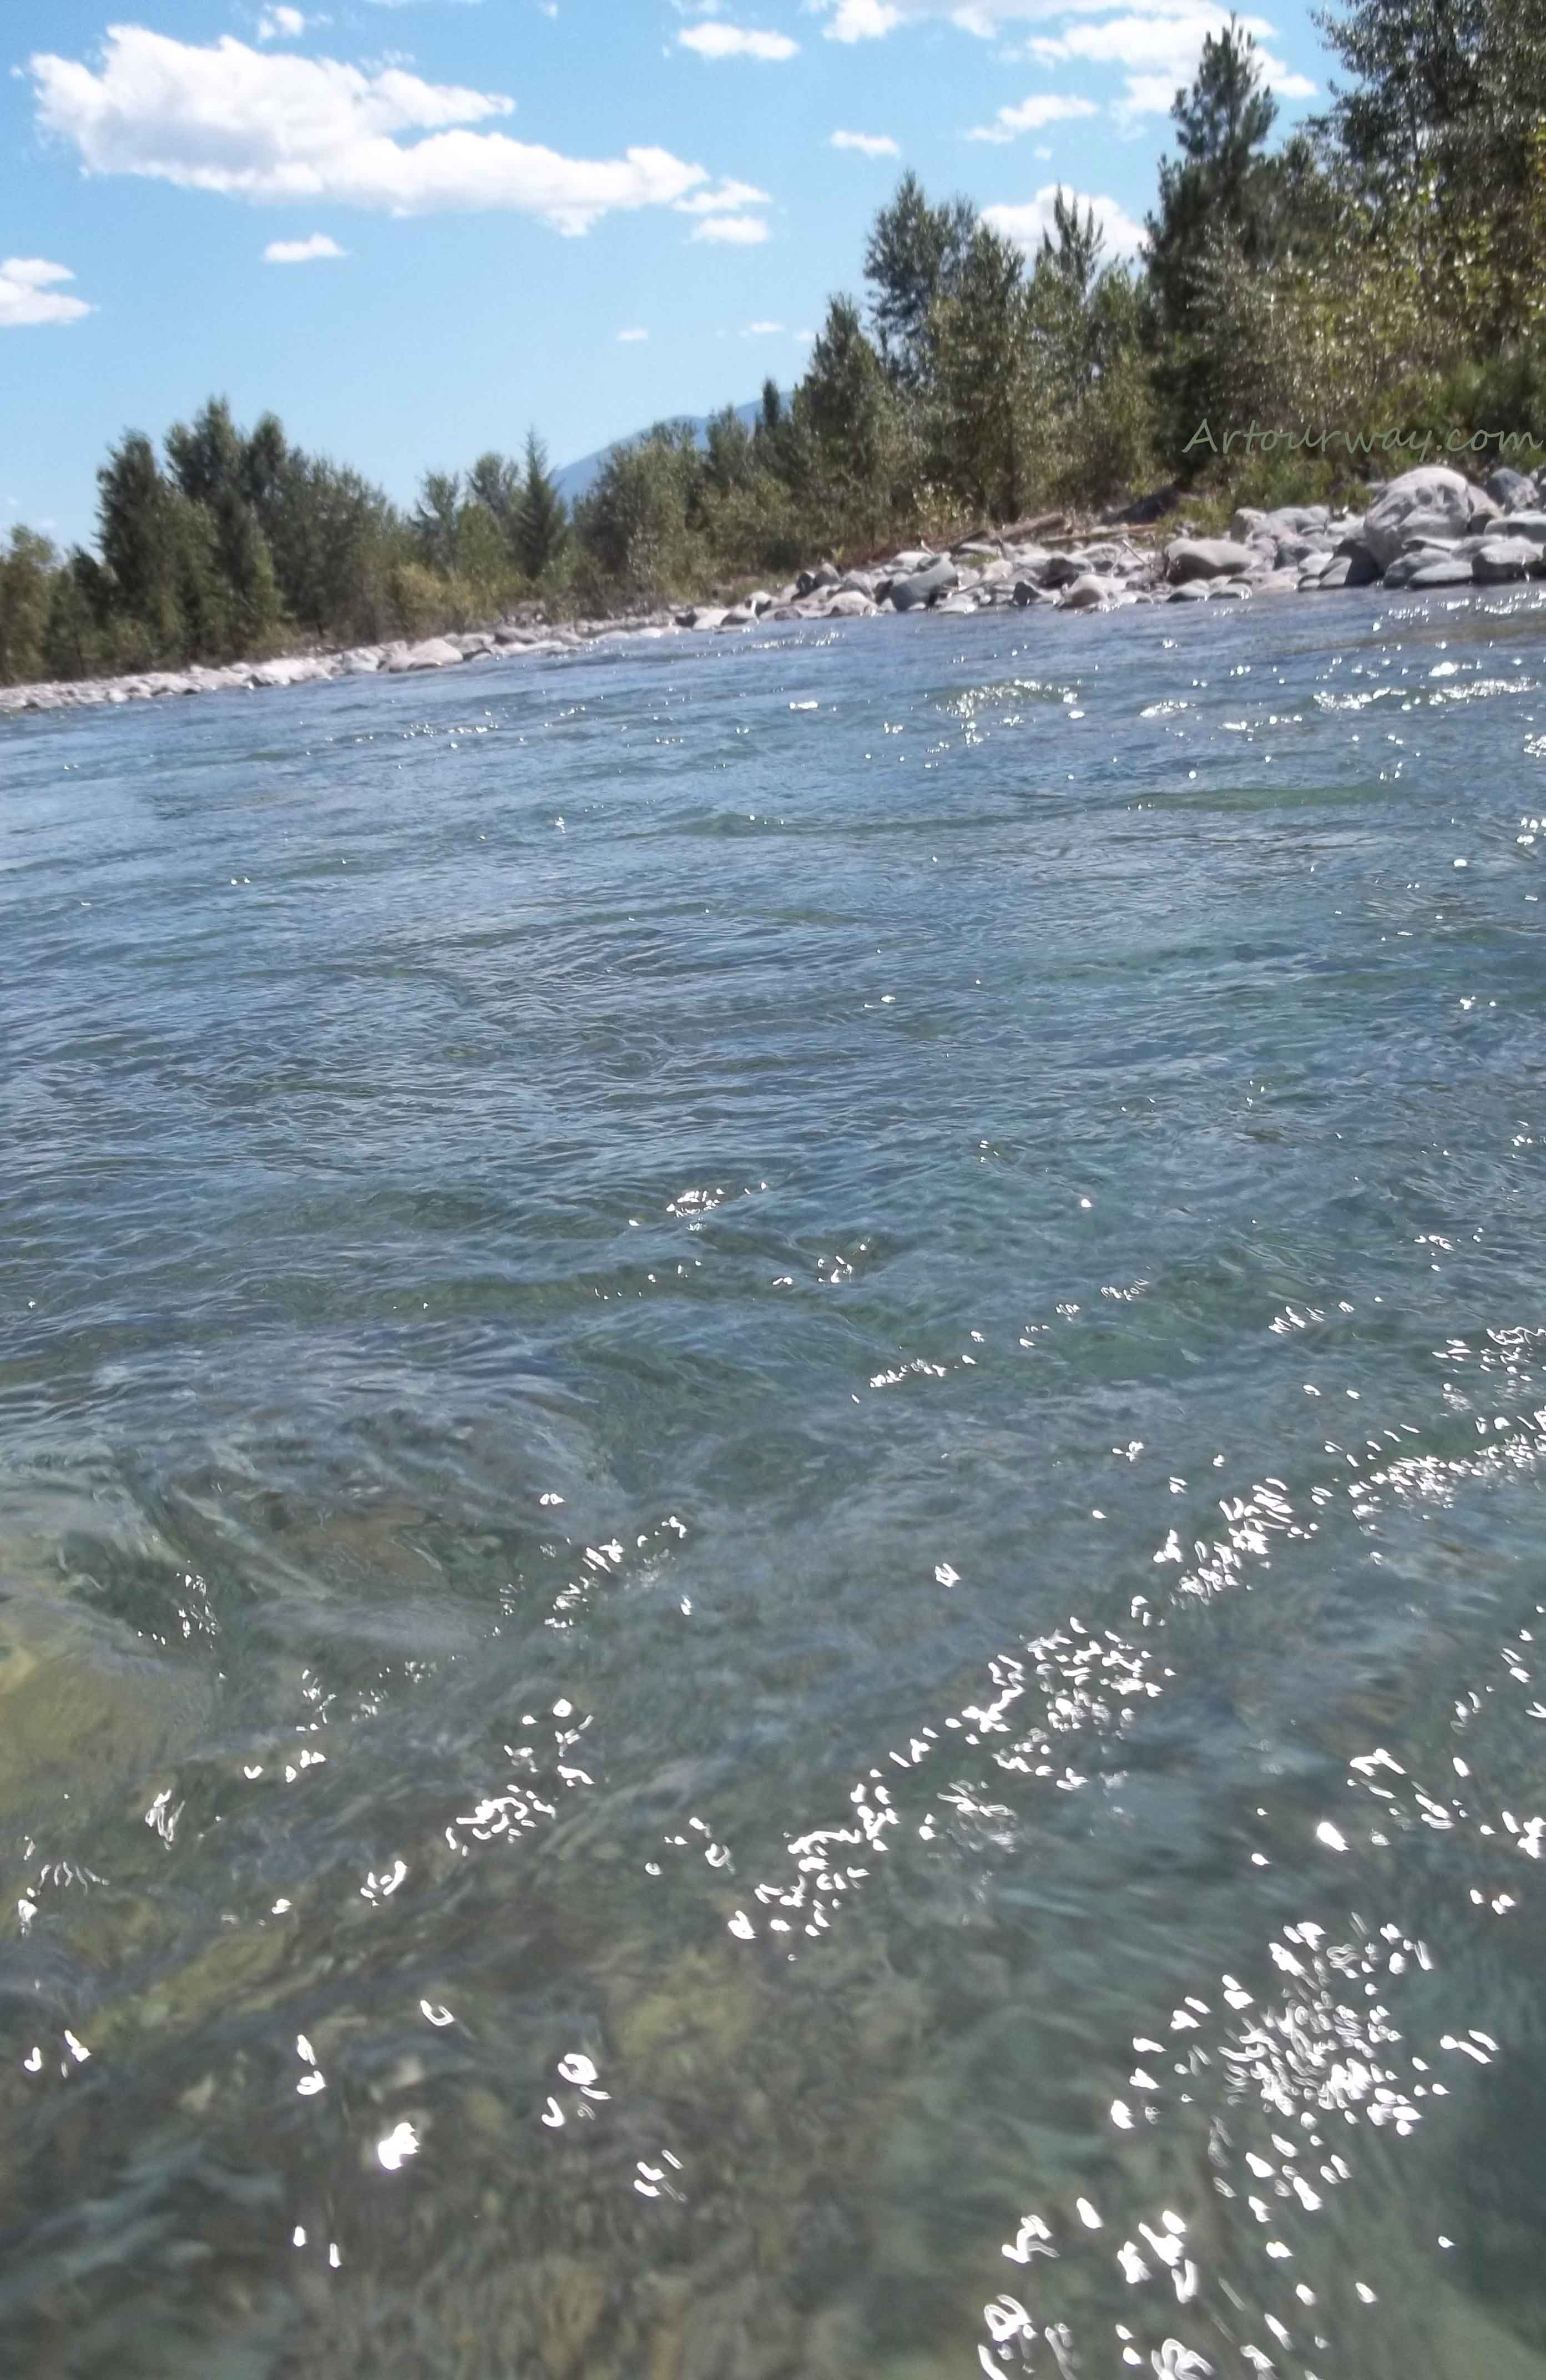 Wildhorse rushes . . rumbling and rippling along the way. Kootenay River Valley, located in Eastern British Columbia.